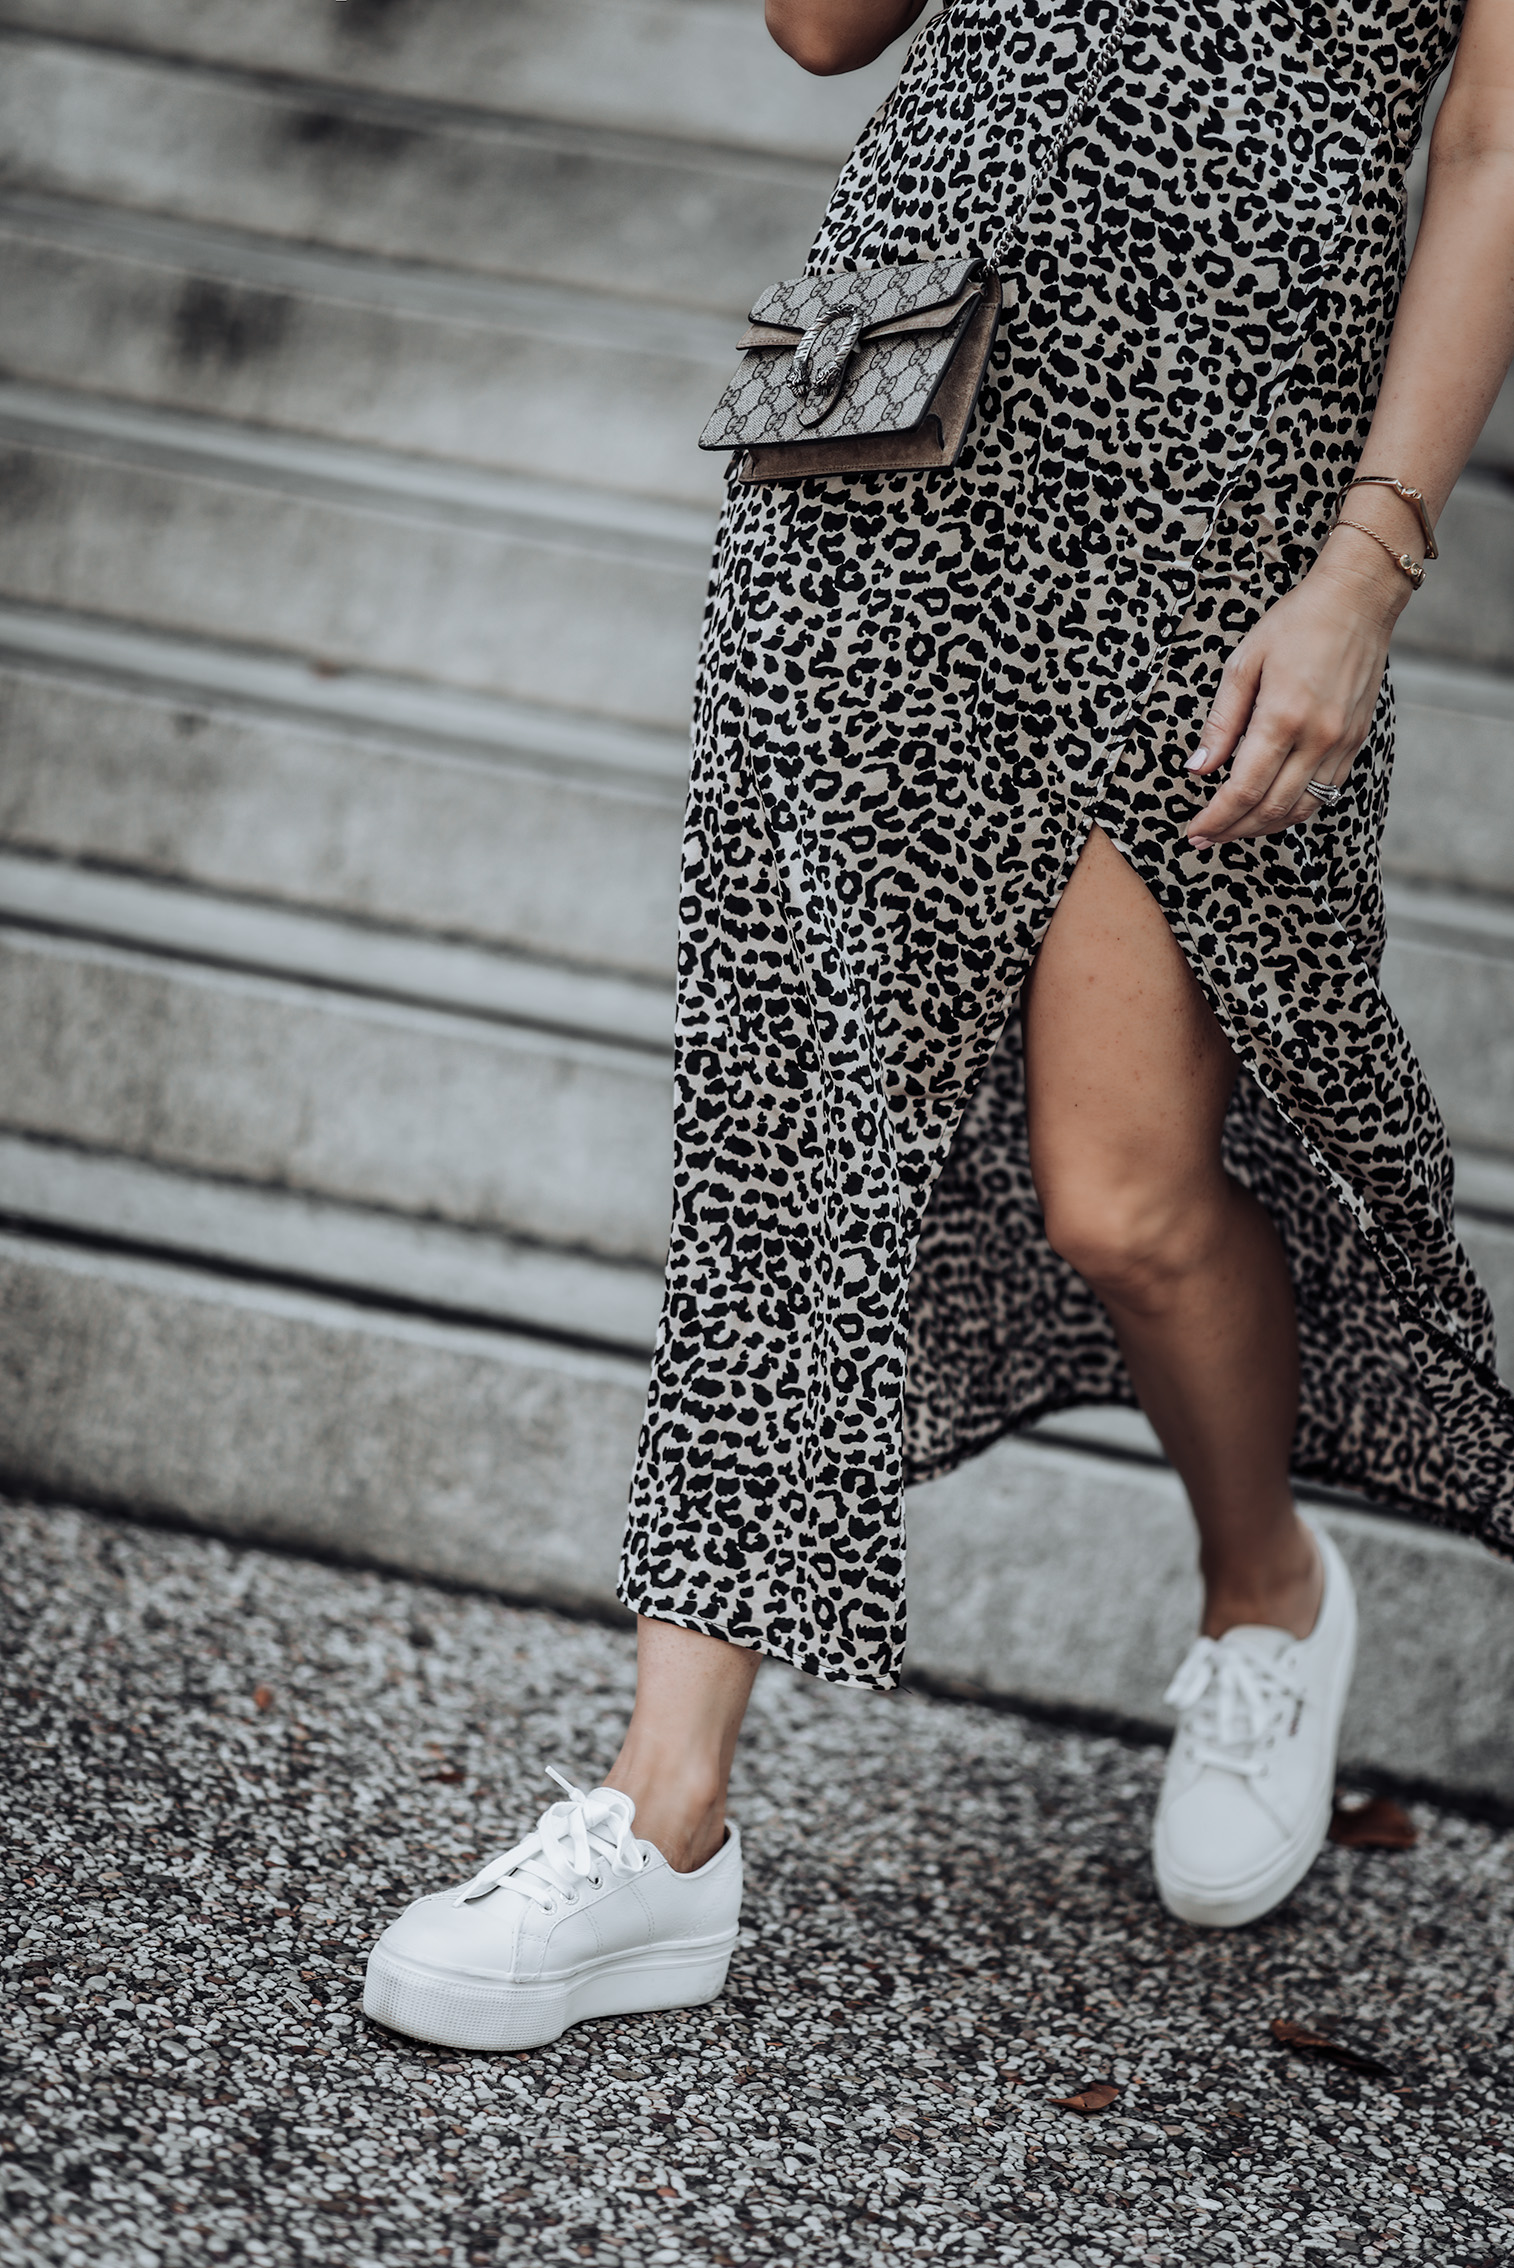 Leopard |Gucci Mini | Leopard Print Slip Dress | Perfect Fit Tee | Superga Platform Sneakers | #liketkit #streetstyle #gucci #casualoutfits